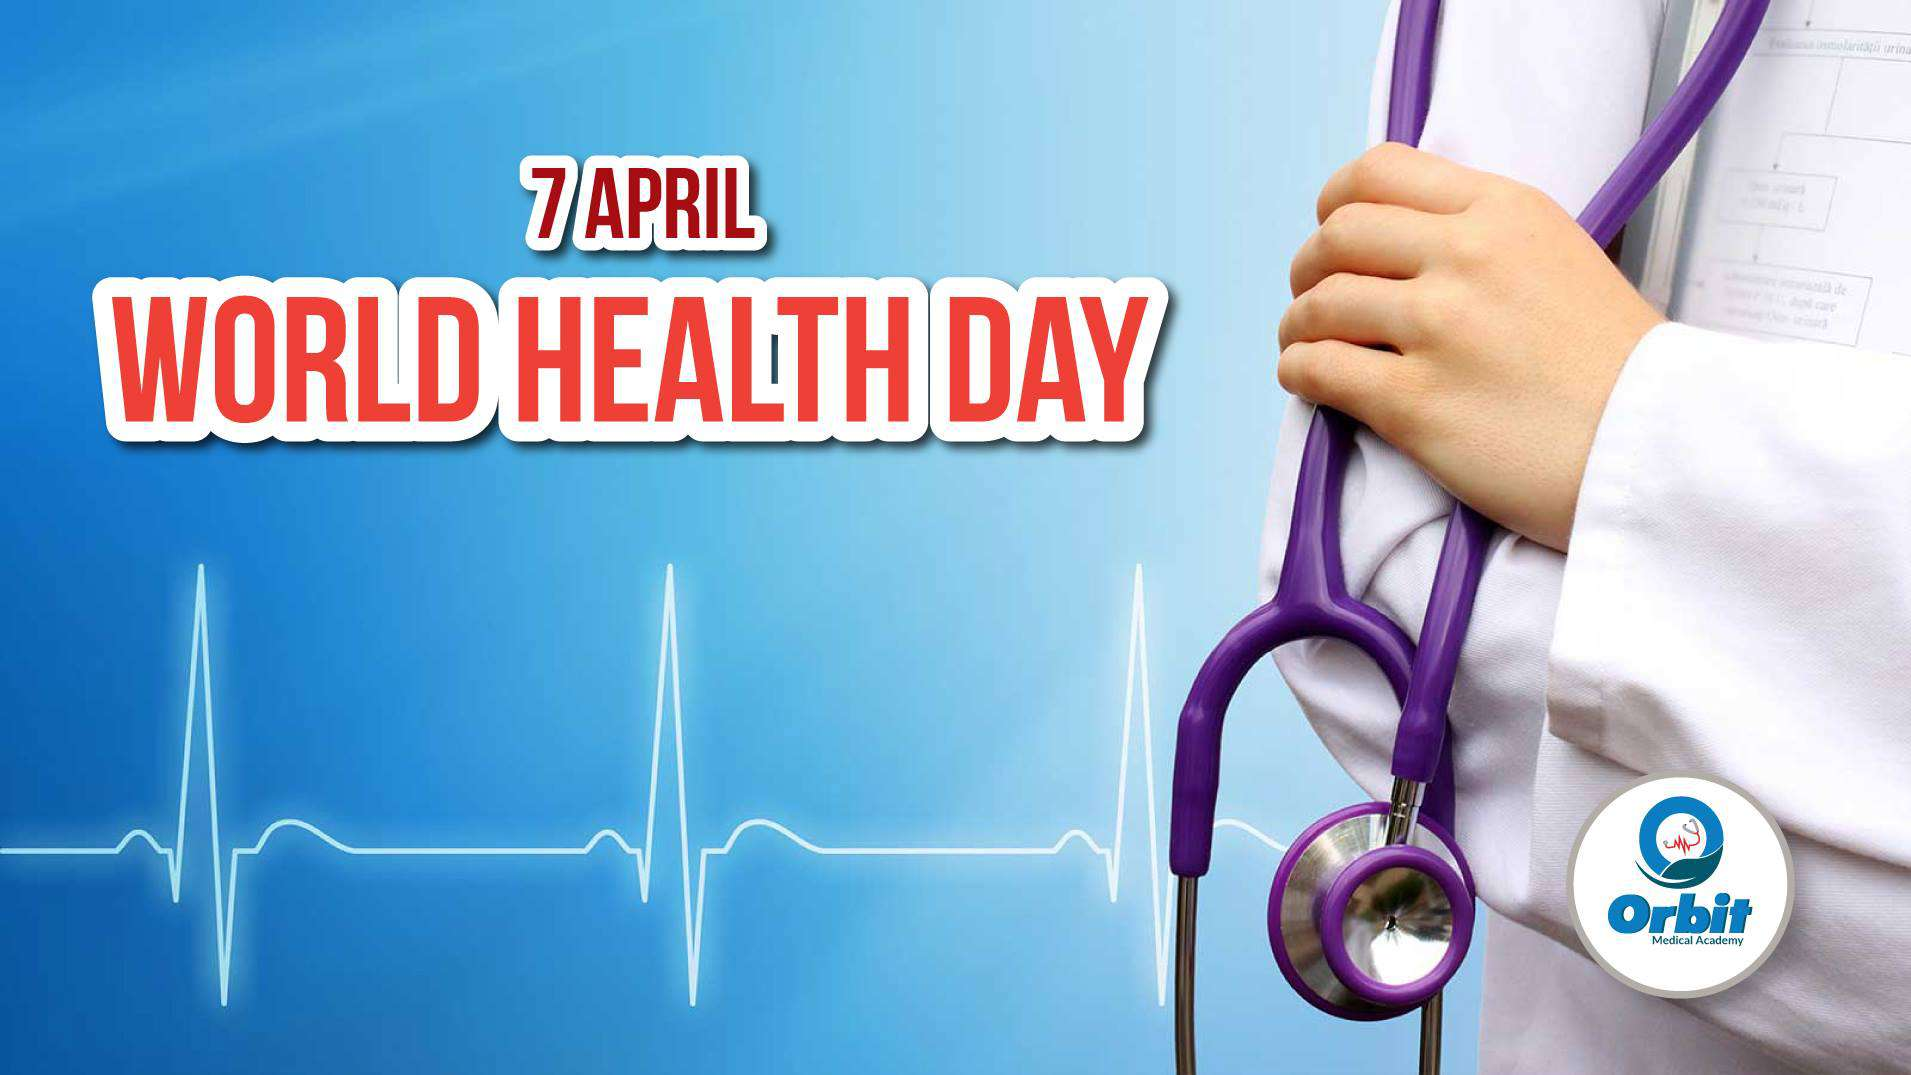 World Health Day Wishes Sweet Images